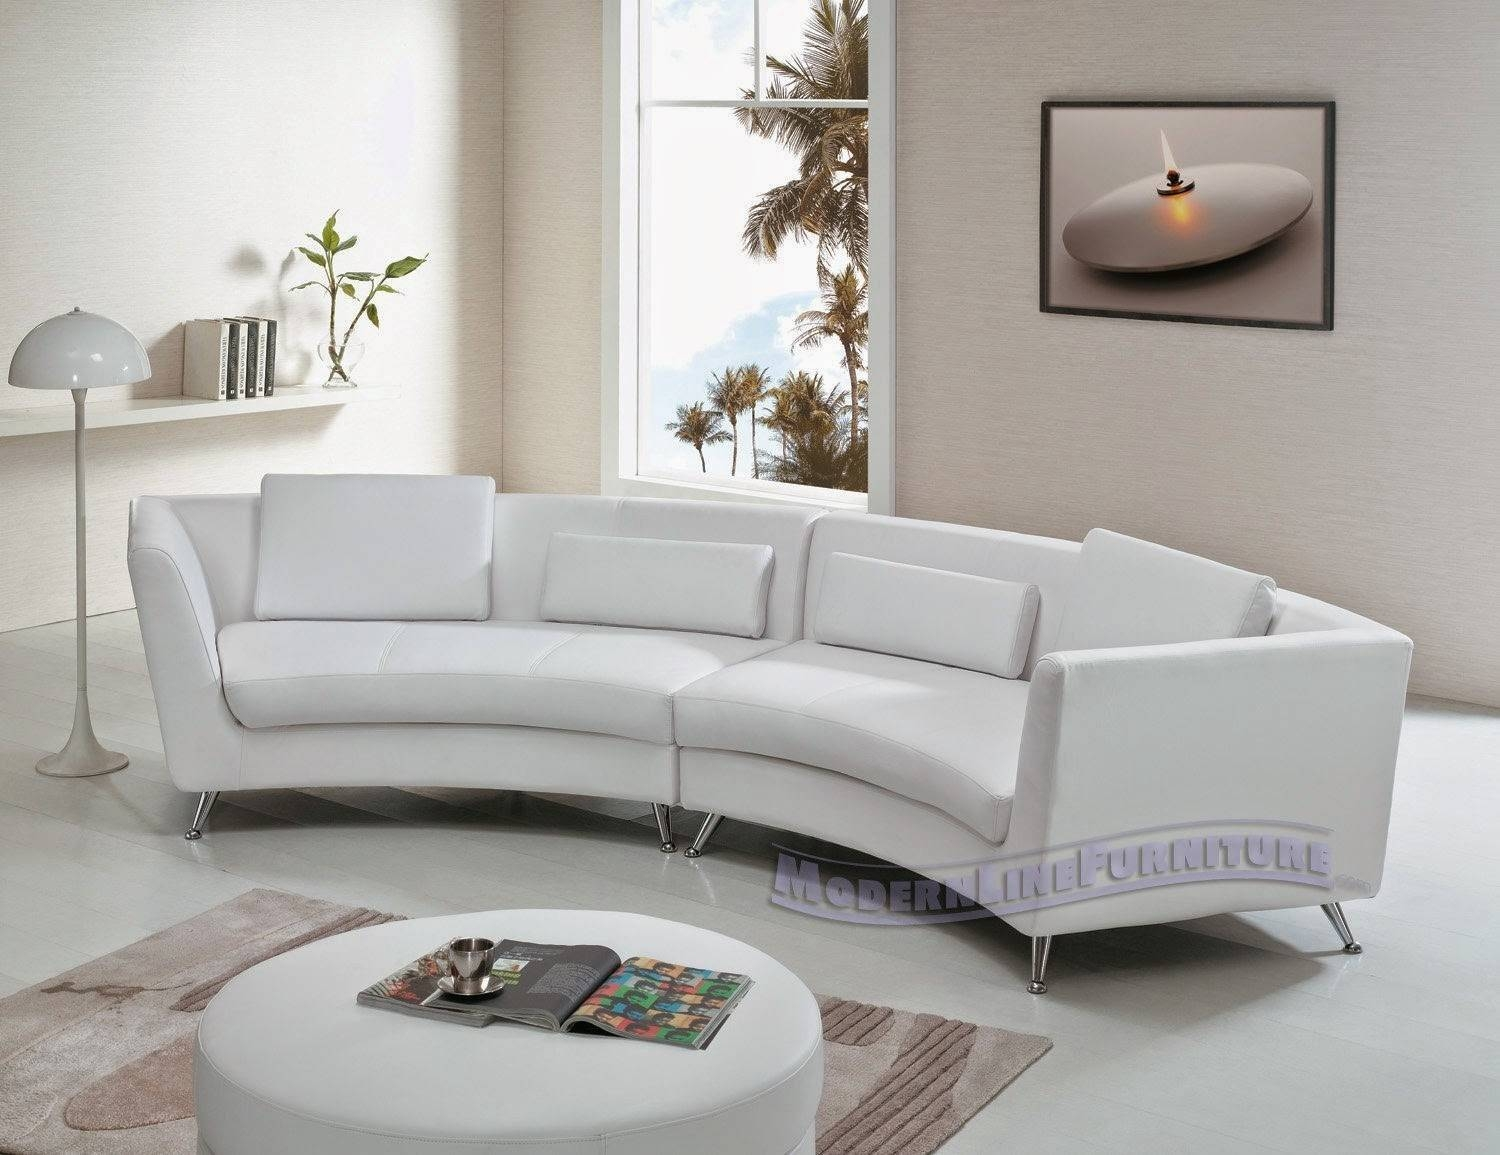 The Bay Sectional Sofa - Leather Sectional Sofa inside The Bay Sofas (Image 21 of 25)